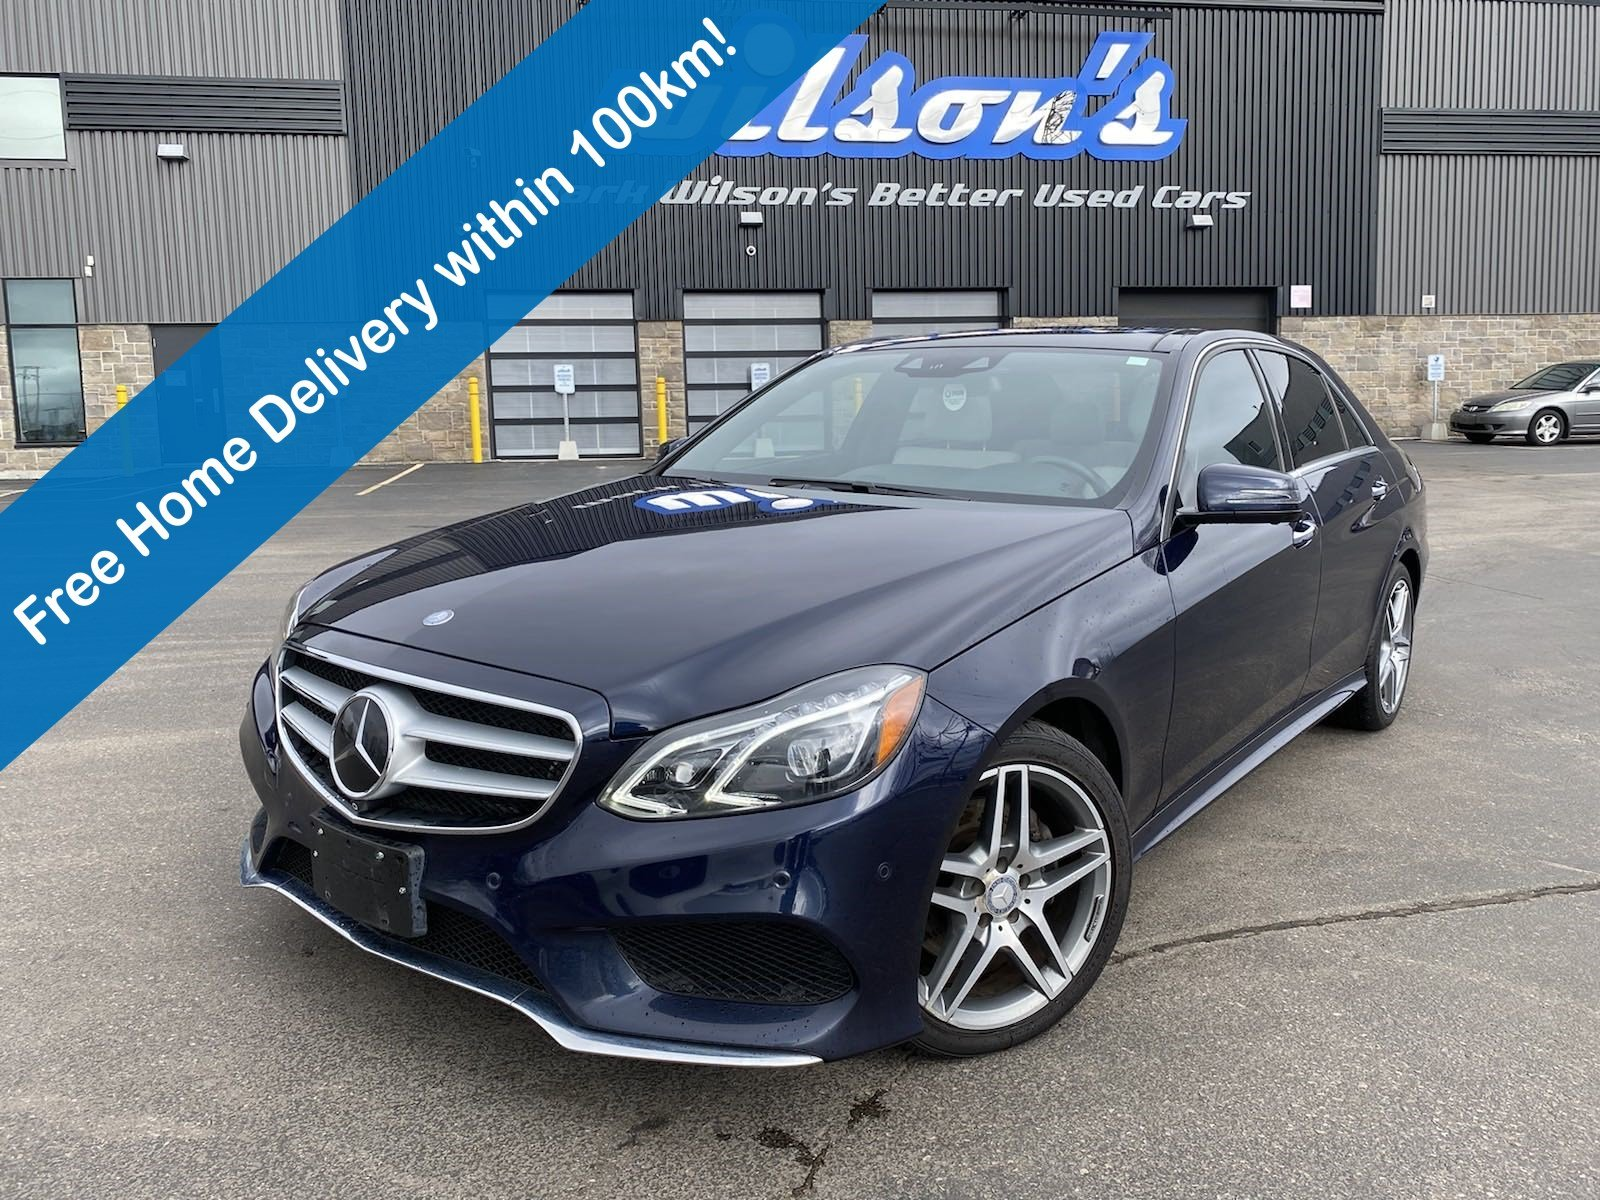 Certified Pre-Owned 2016 Mercedes-Benz E-Class E400 4MATIC, Navigation, Sunroof, Leather, Driver Assistance Package & More!